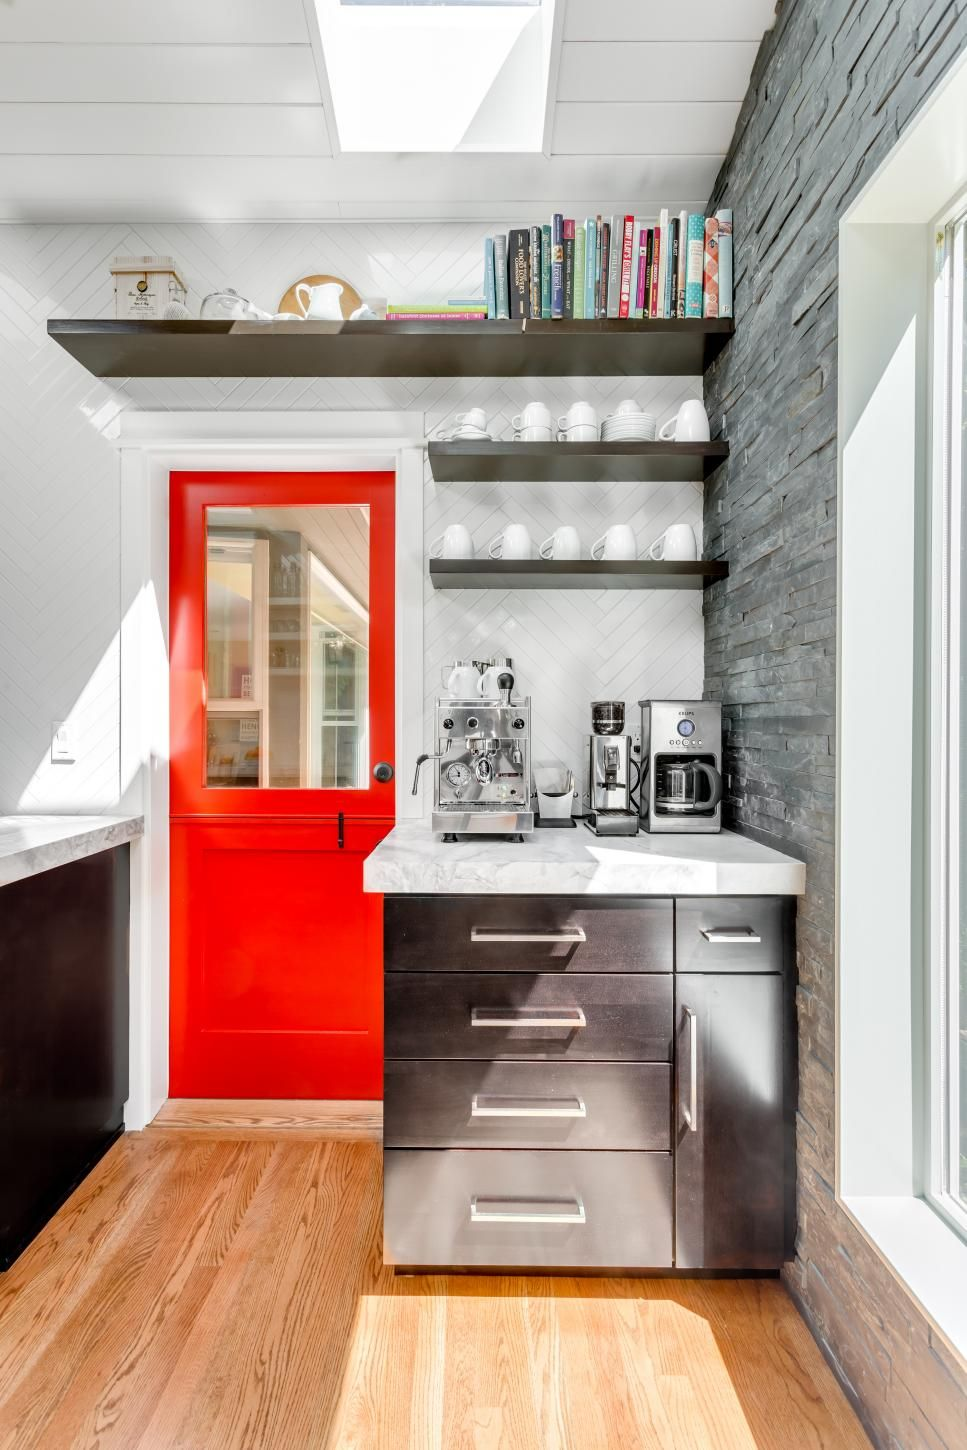 A bright red dutch door adds a fun splash of color to this neutral kitchen the contemporary space is full of natural light thanks to skylights